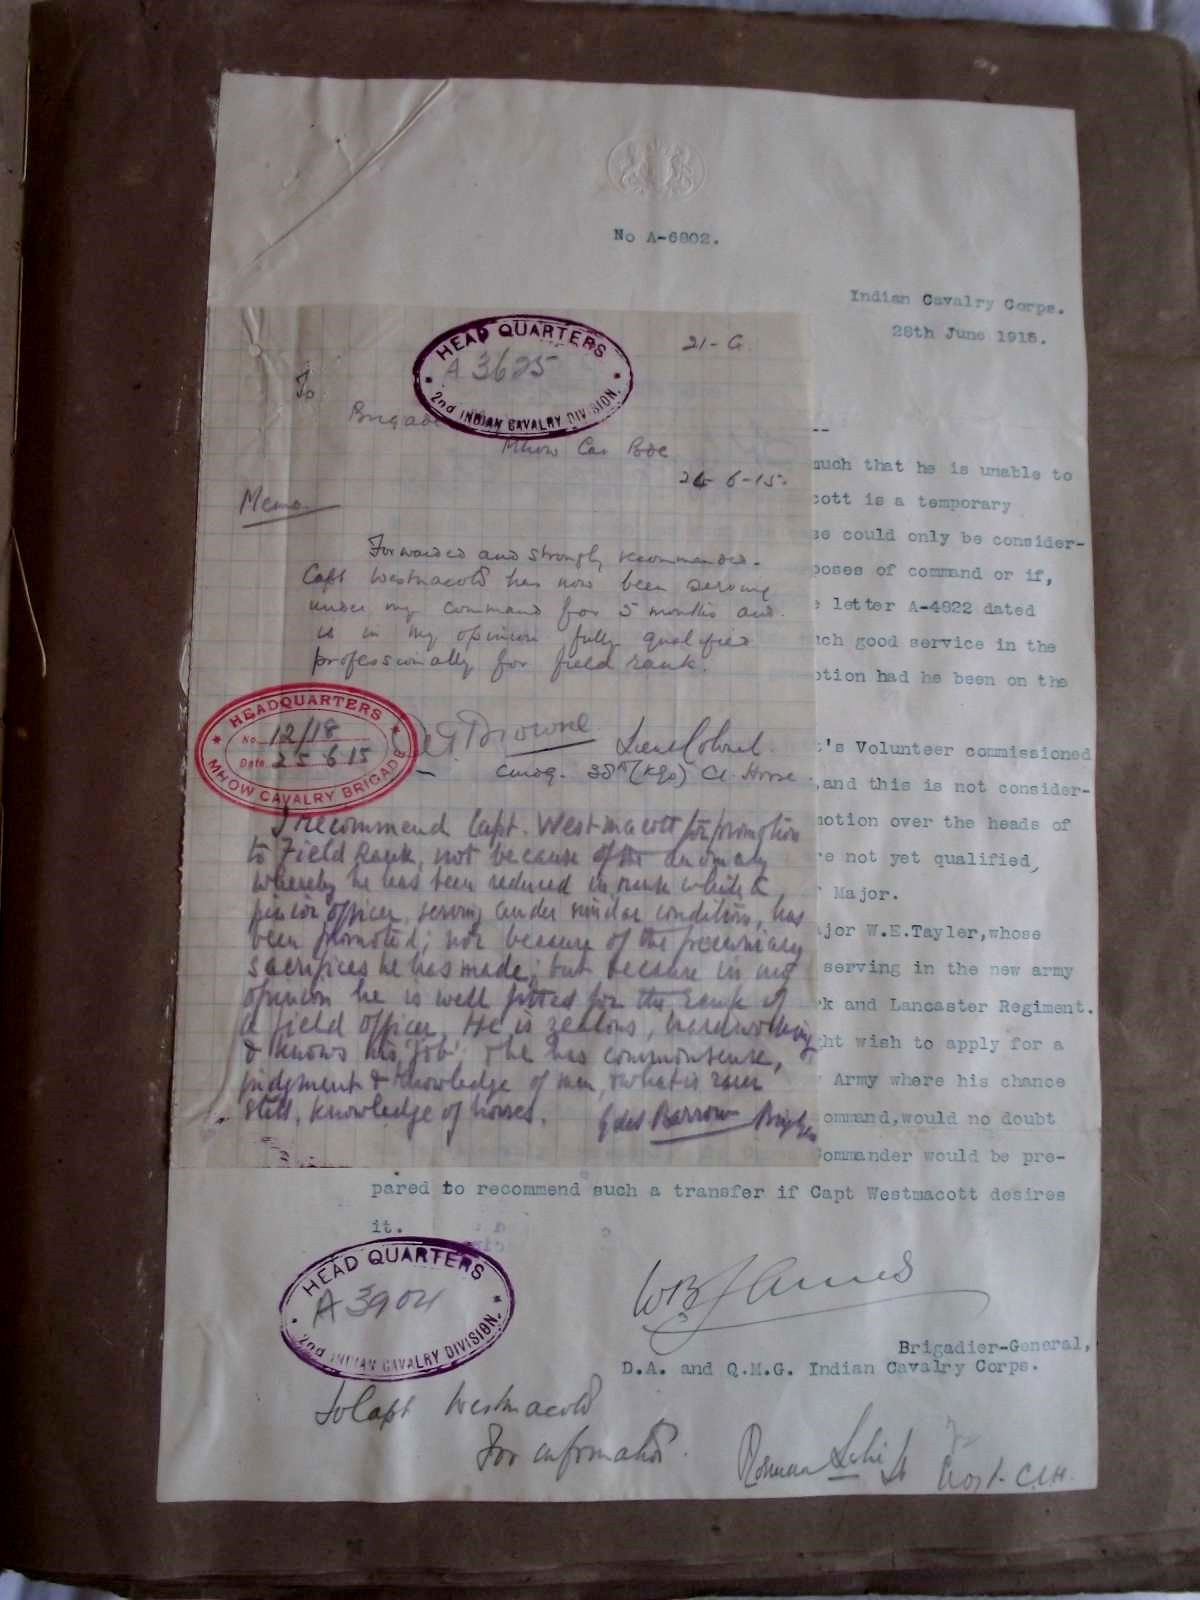 Letter from Brigadier James with notes attached urging him to promote Tom back to Major